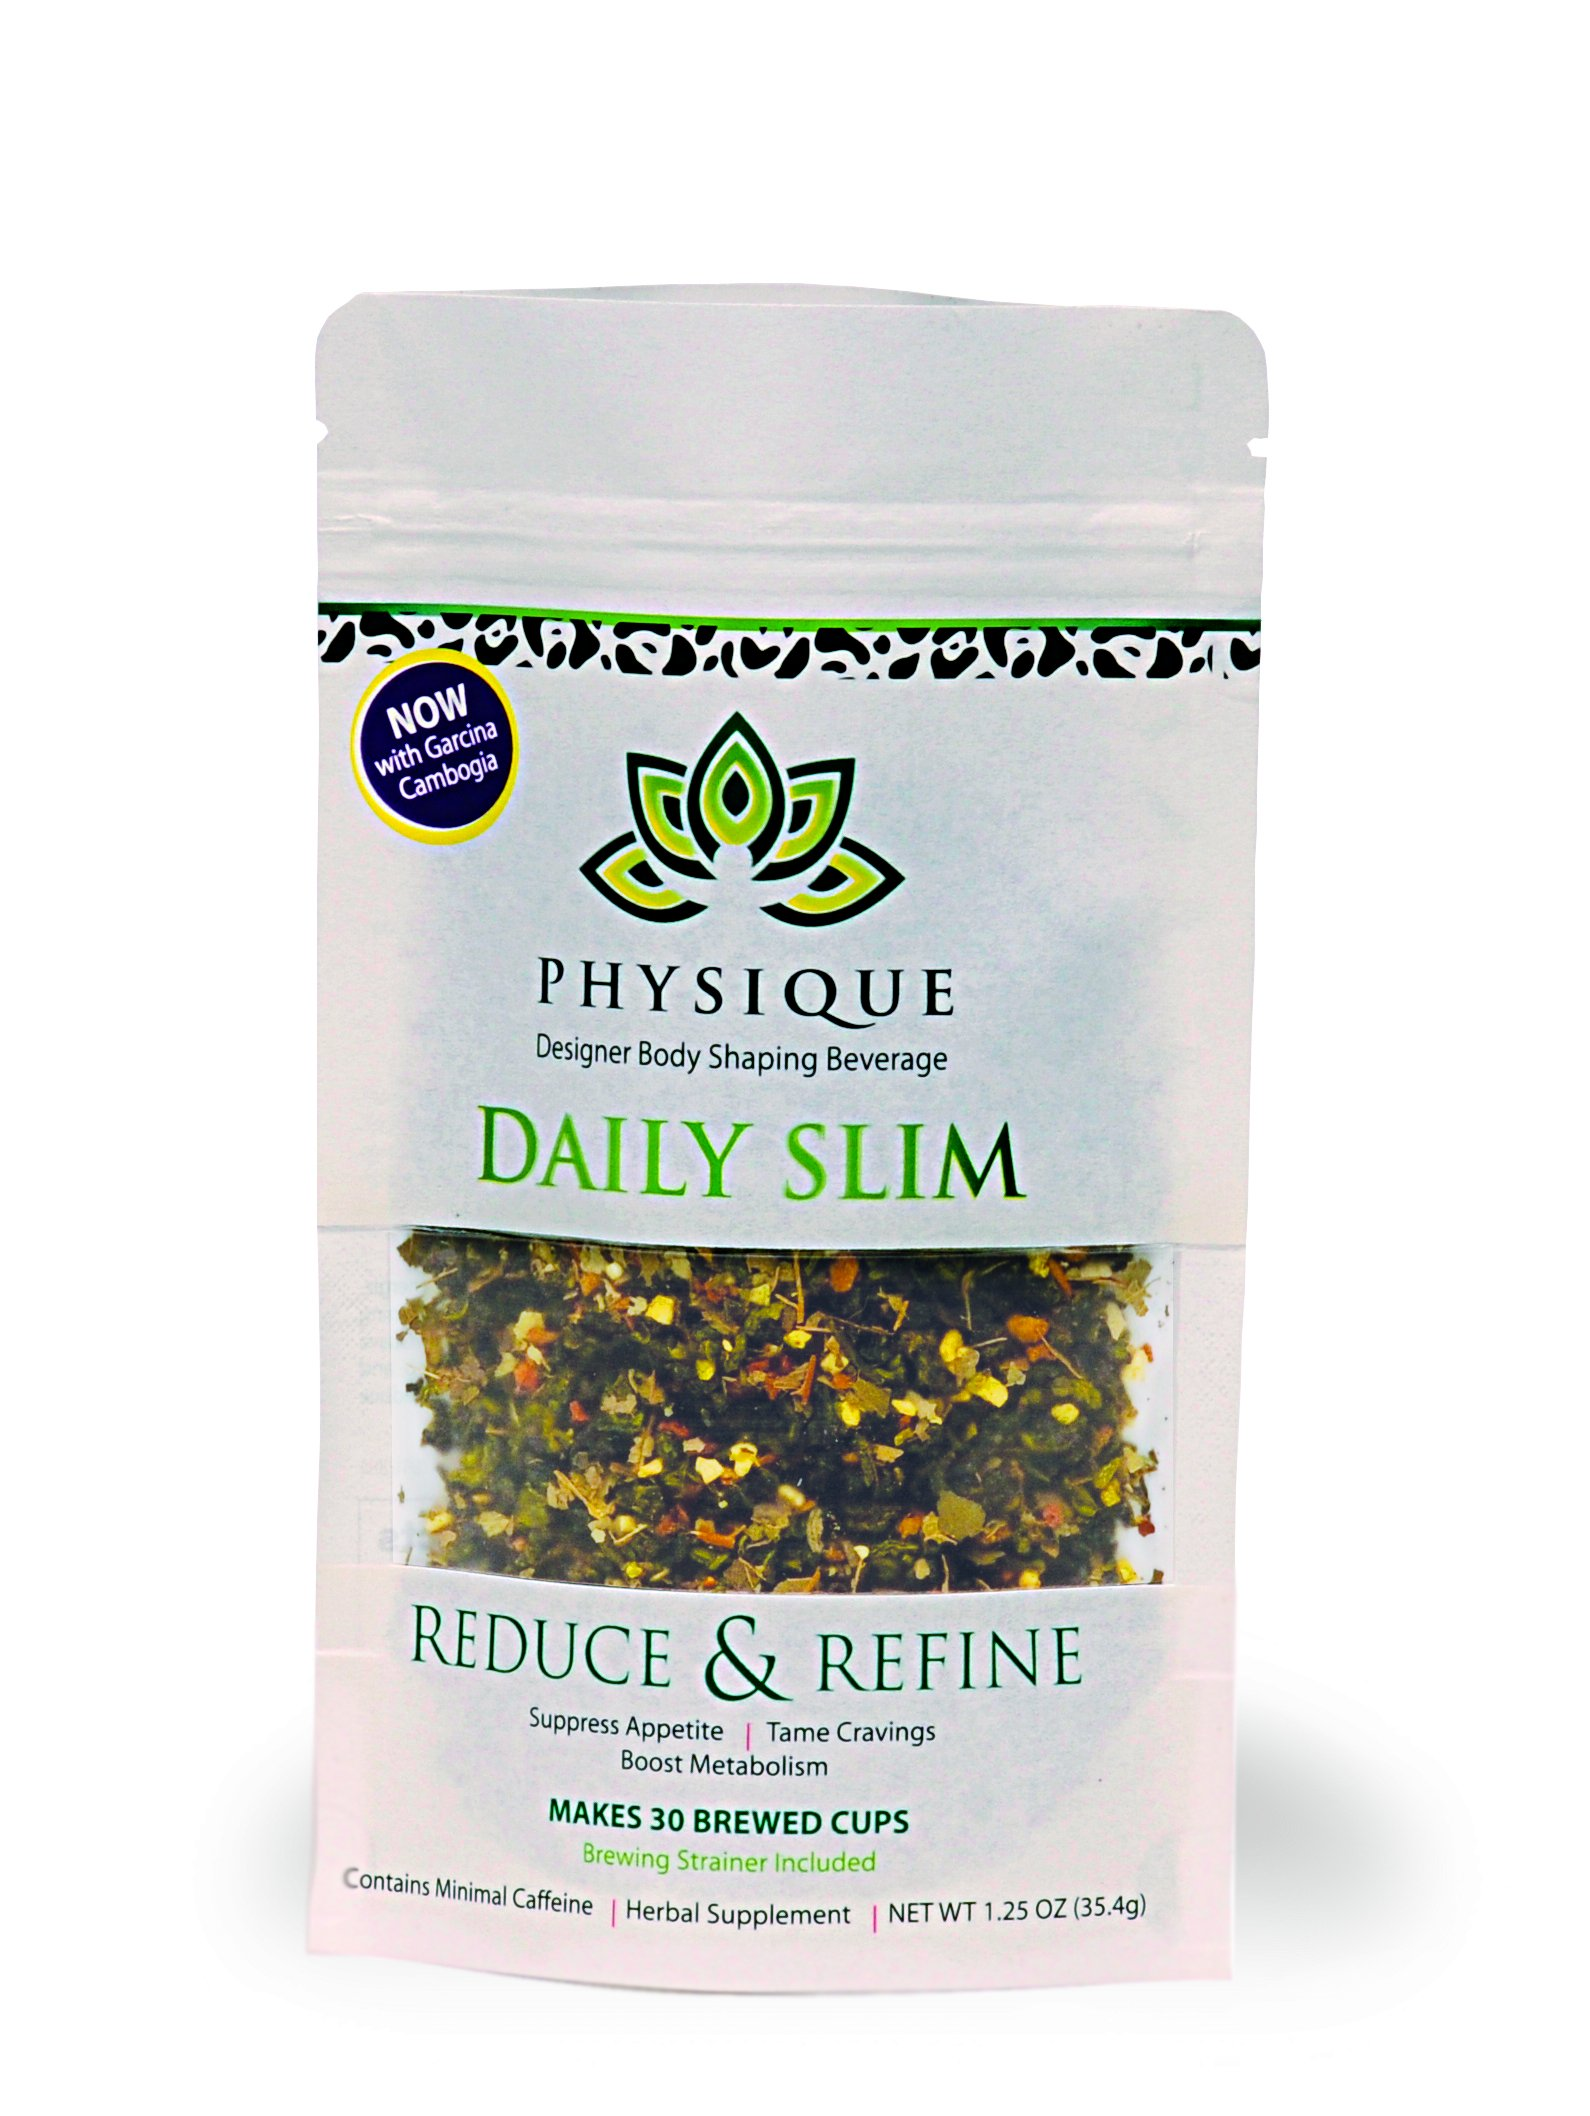 Herbal Tea Weight Loss Cleanse: Daily Slim Detox Tea for Natural Weight Loss - Slimming Diet Aid Tea with Appetite Suppressant - Metabolism Booster and Fat Burning Supplement -Over 150 Servings - 8 oz by Physique